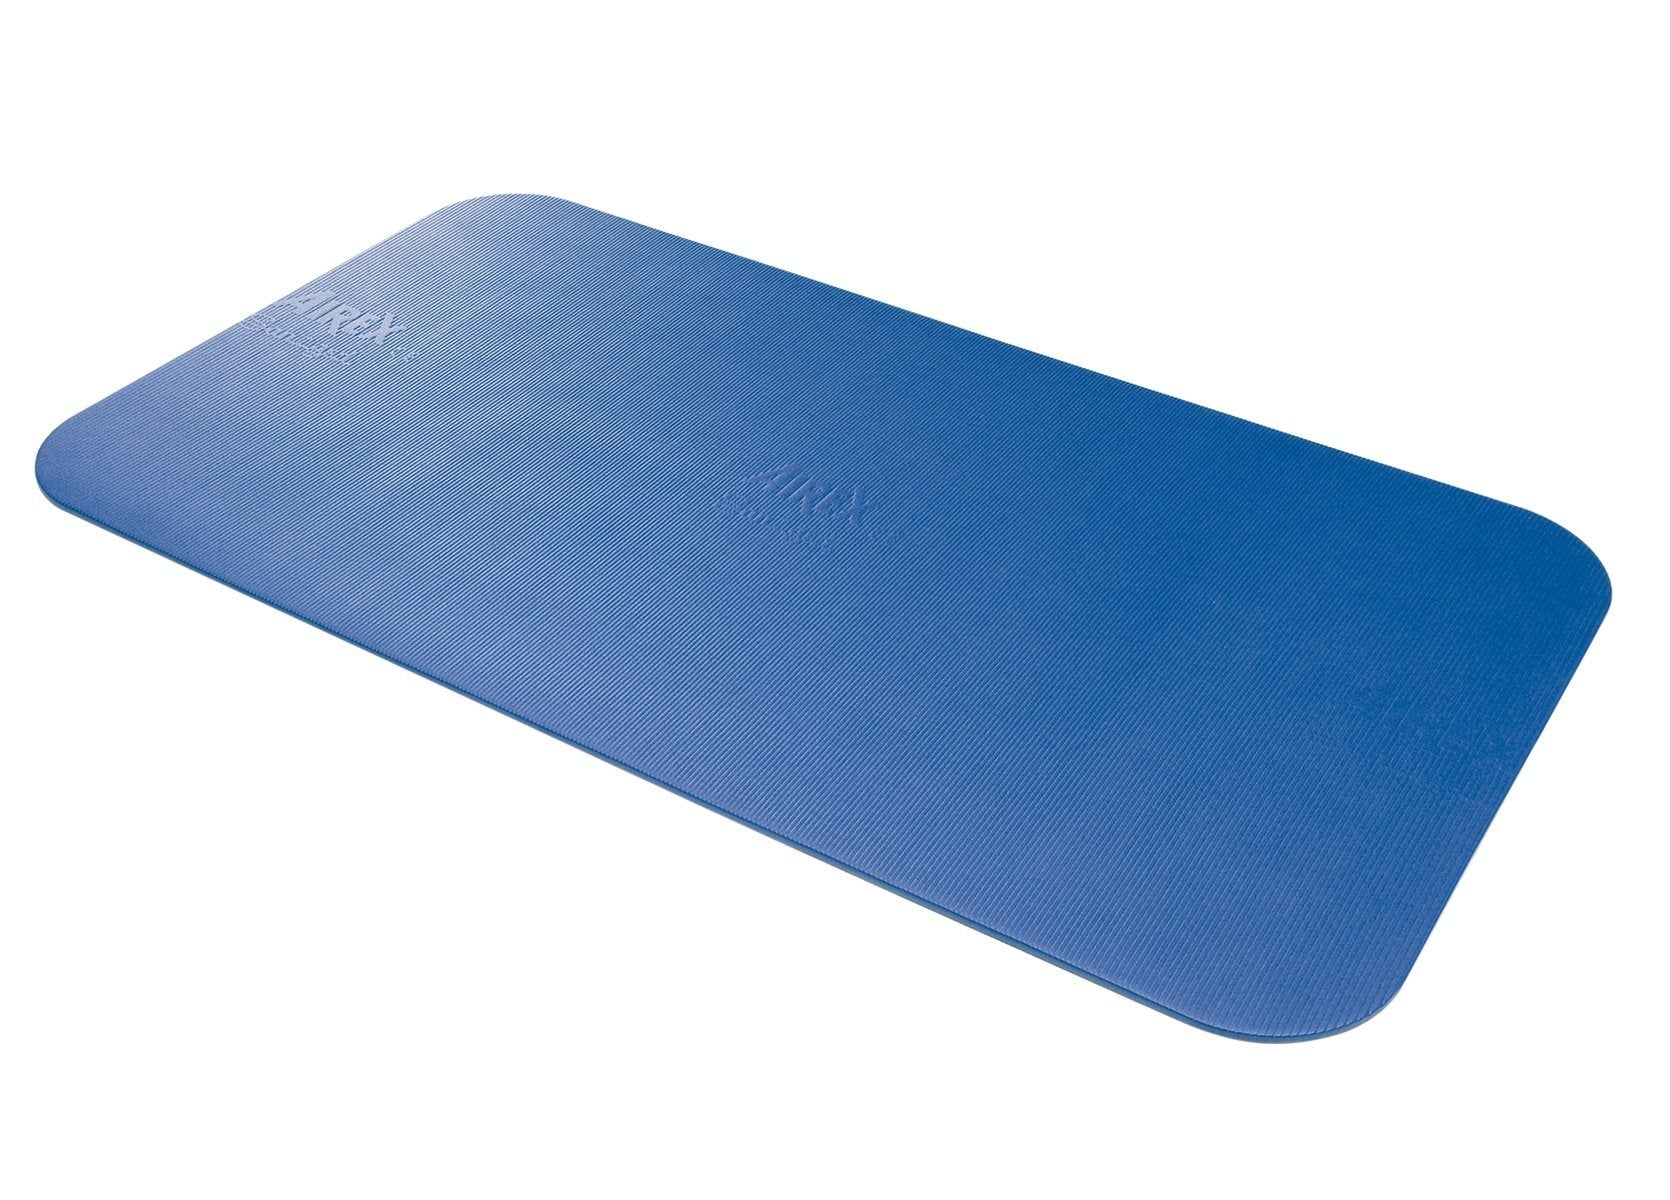 "Airex® Exercise Mat - Corona - Blue, 72"" x 39"" x 5/8"" - US MED REHAB"